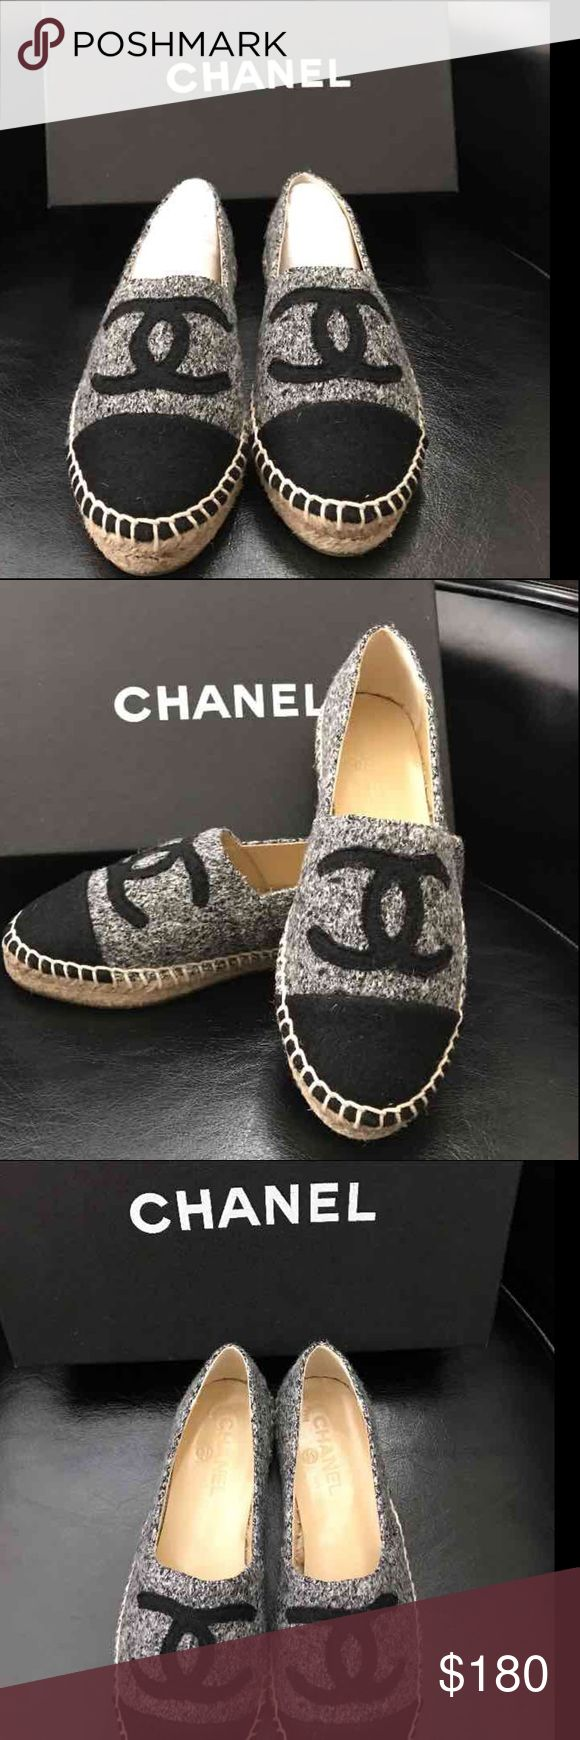 chanel espadrilles 2016/2017 fall winter new colour New in box with dust bag made in Spain ⚡️last day on sale ⚡️ CHANEL Shoes